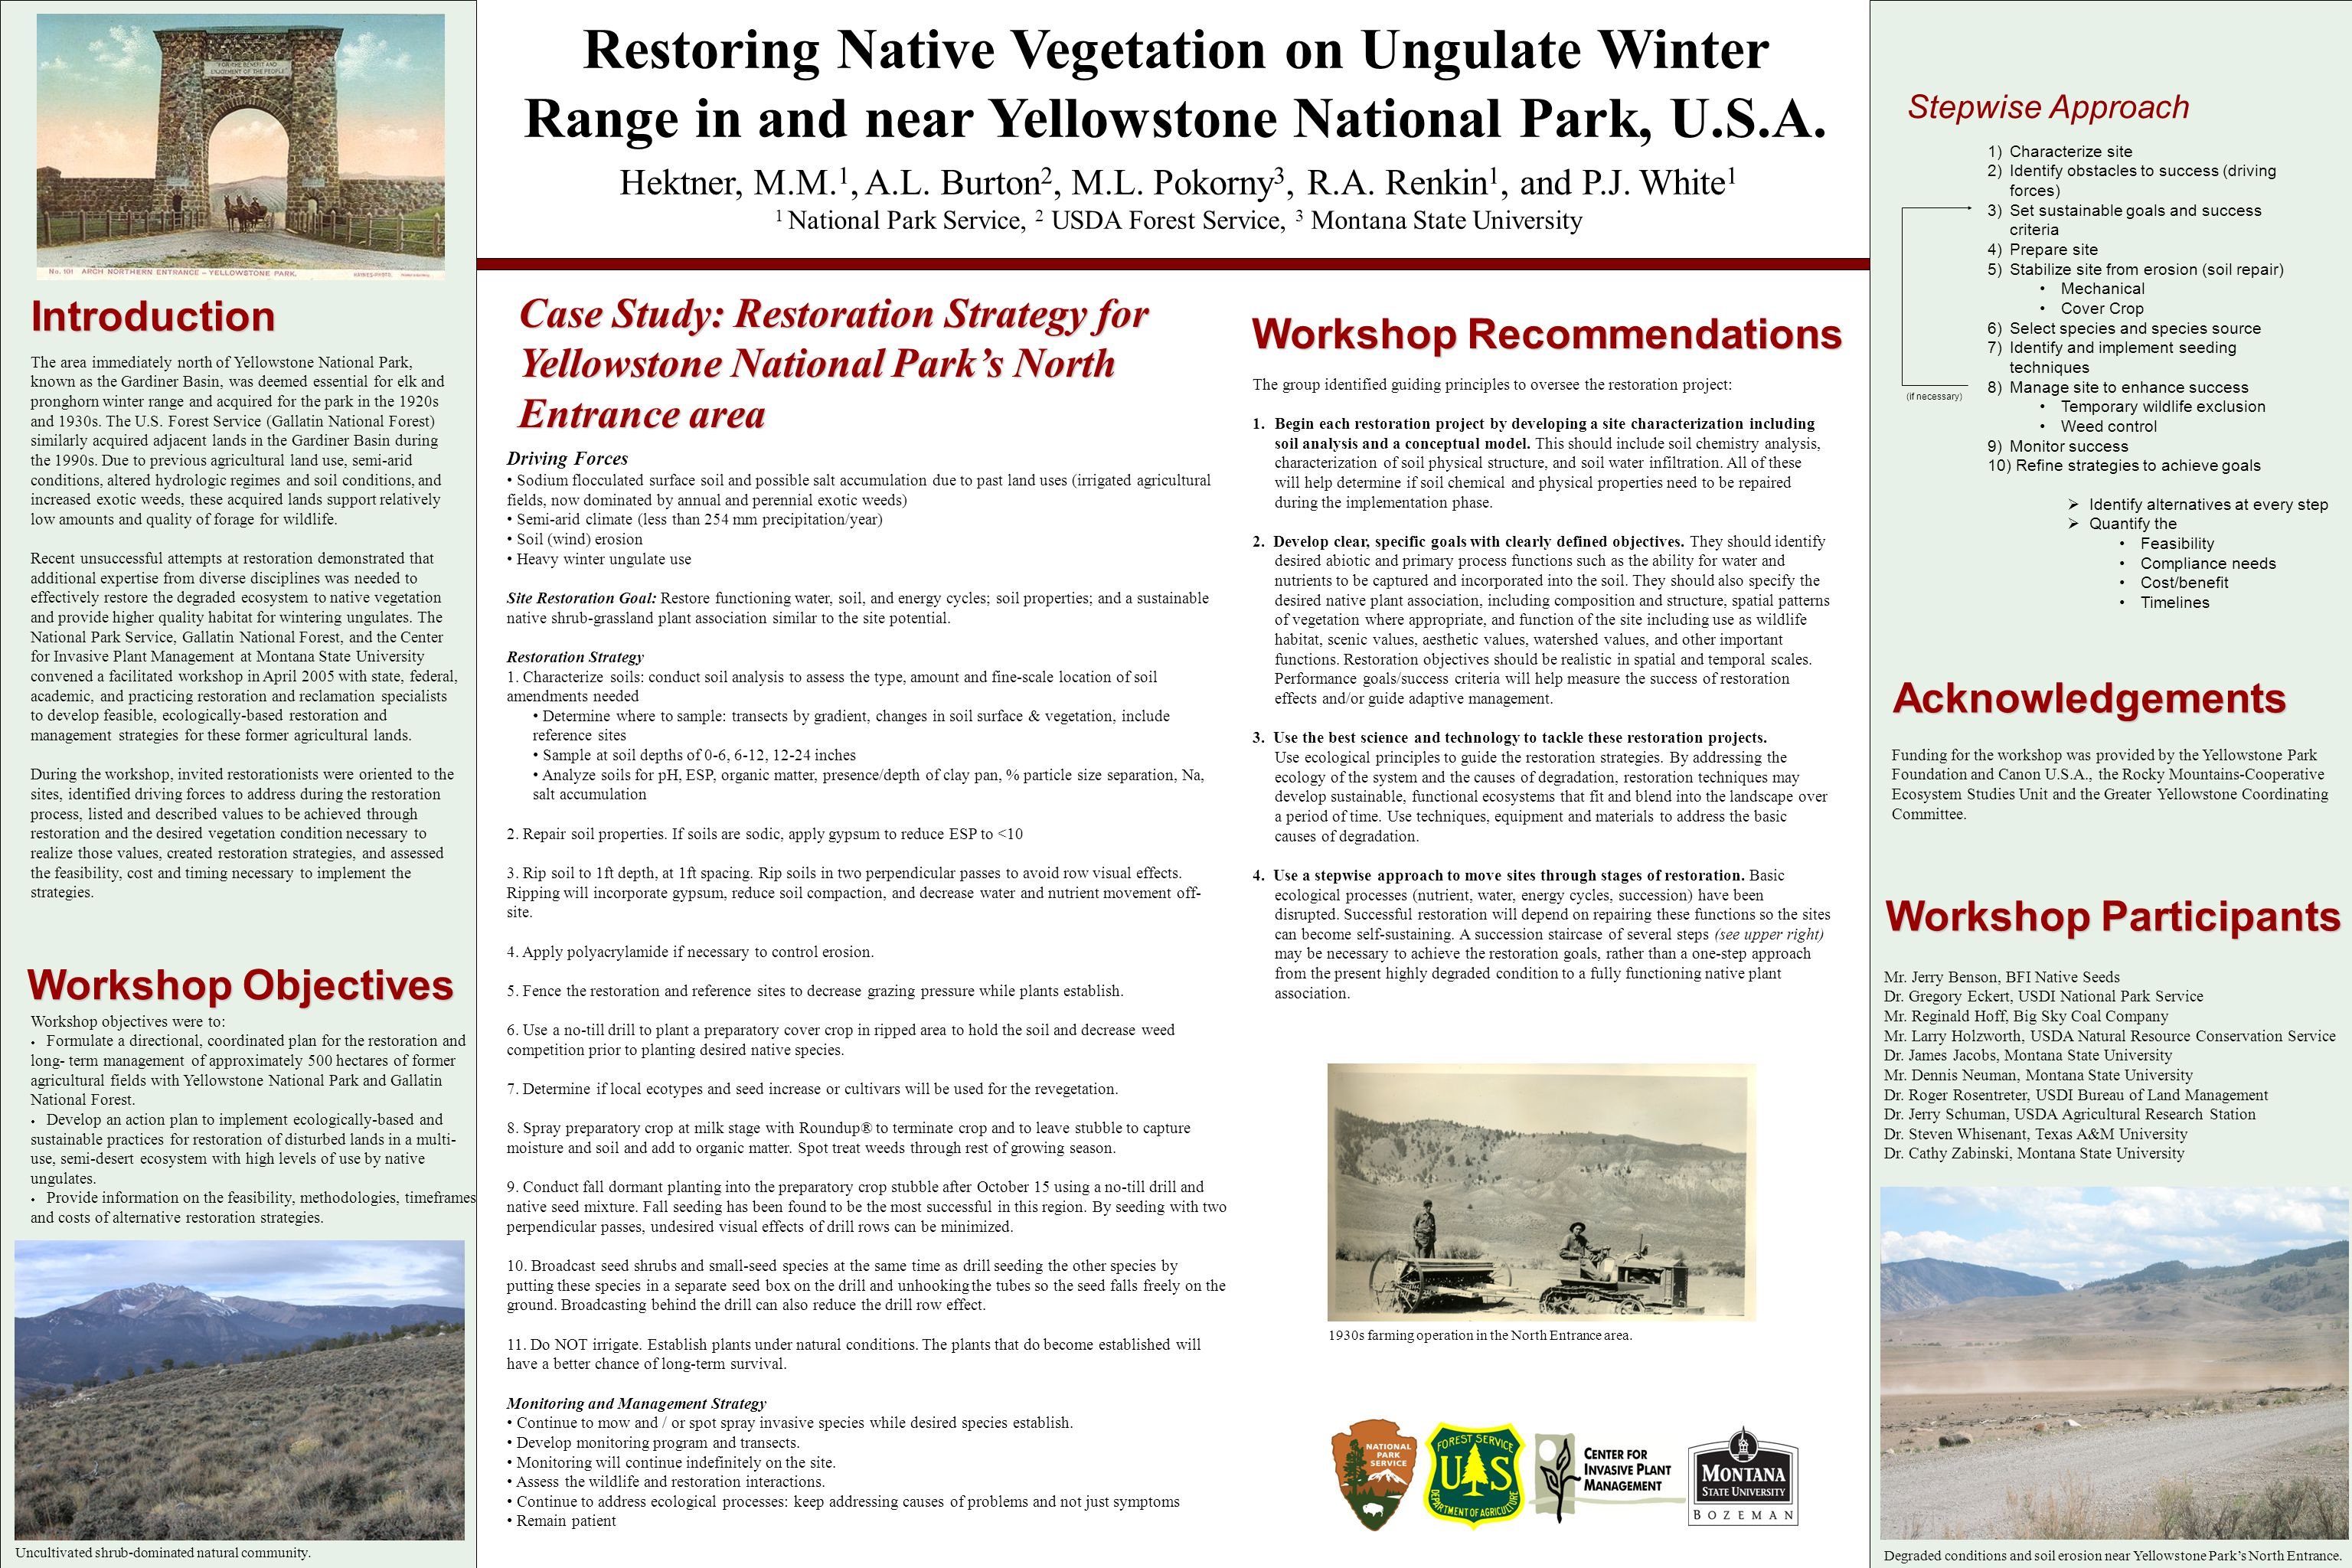 Restoring Native Vegetation on Ungulate Winter Range in and near Yellowstone National Park, U.S.A.